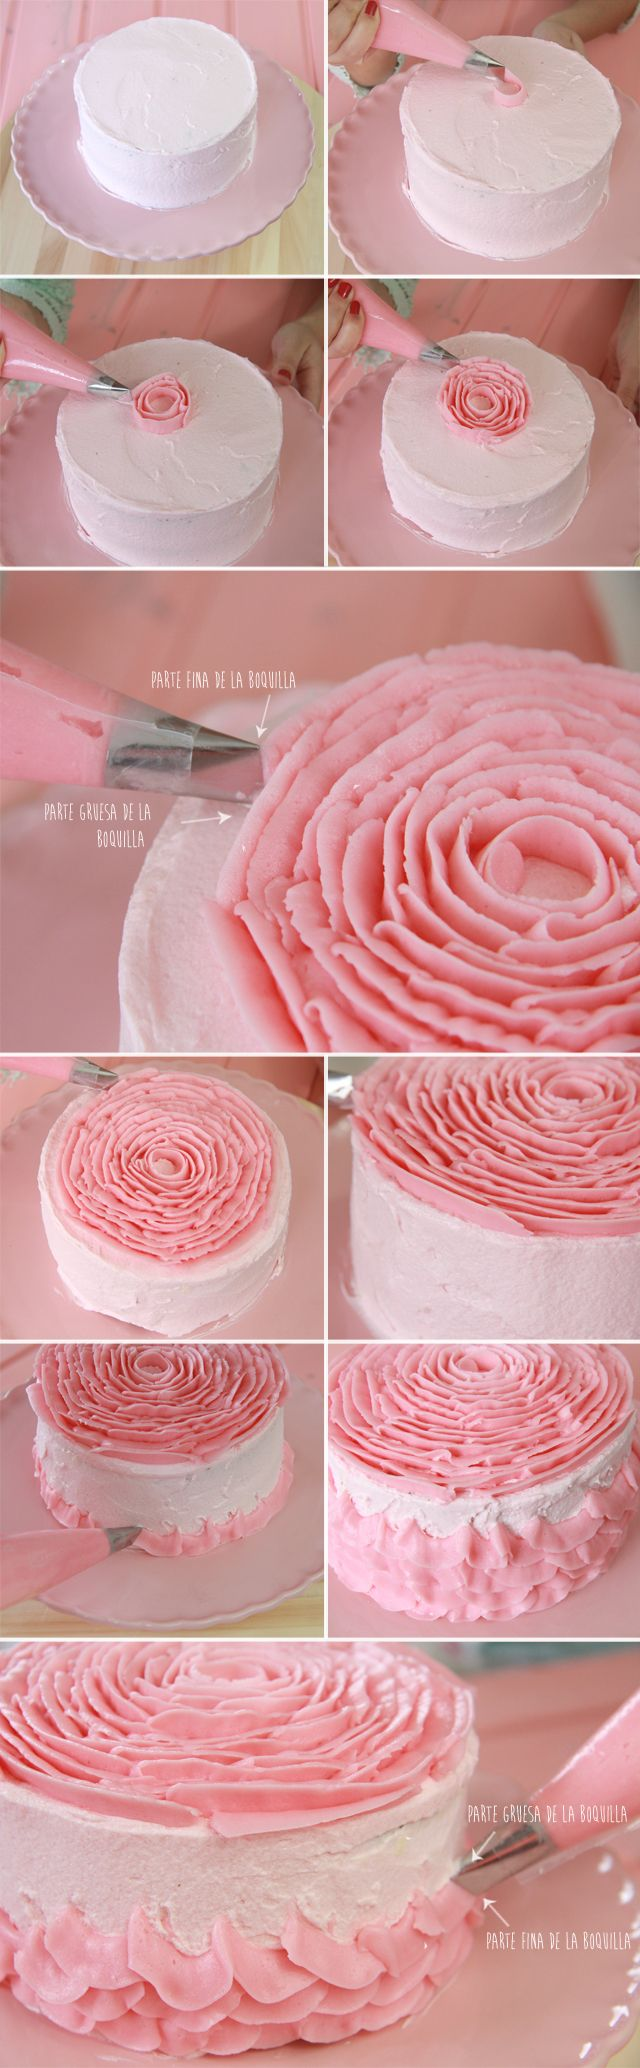 Pin cara menghias kue cake decorating cake on pinterest - Find This Pin And More On Cake And Cookie Decorating Tips More By Sactownsue